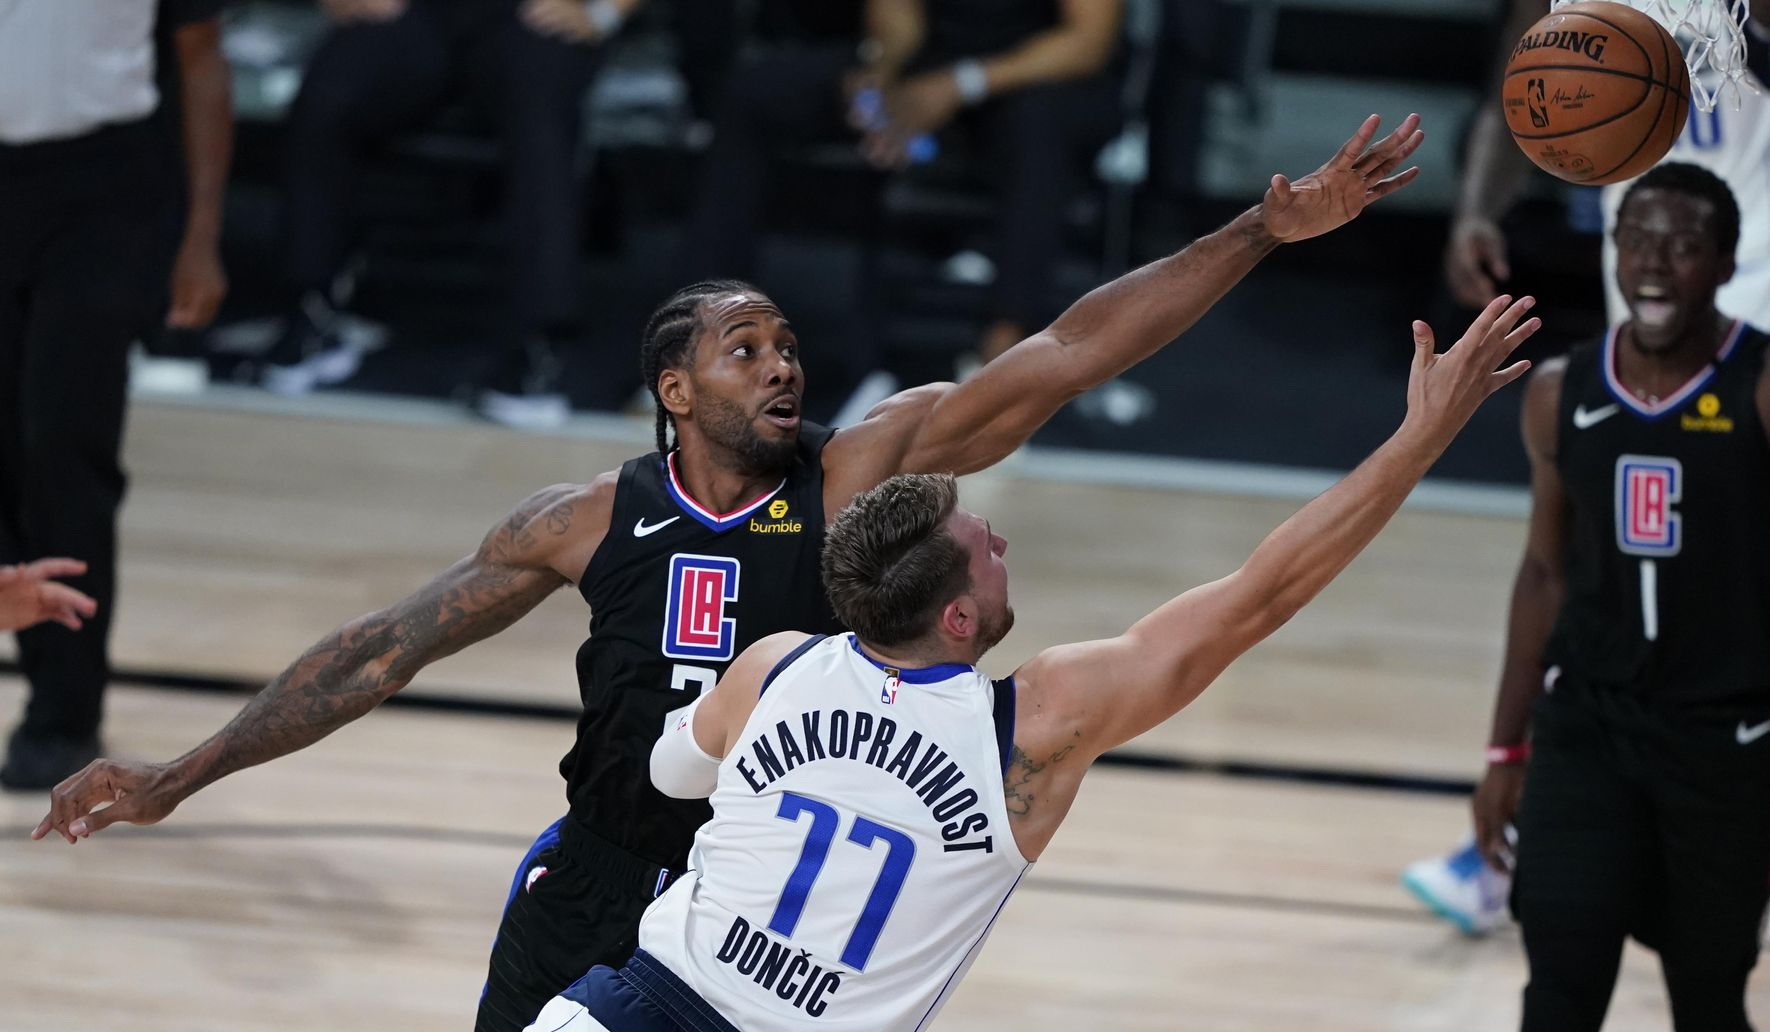 Aptopix_clippers_mavericks_basketball_14490_c0-96-4757-2869_s1770x1032